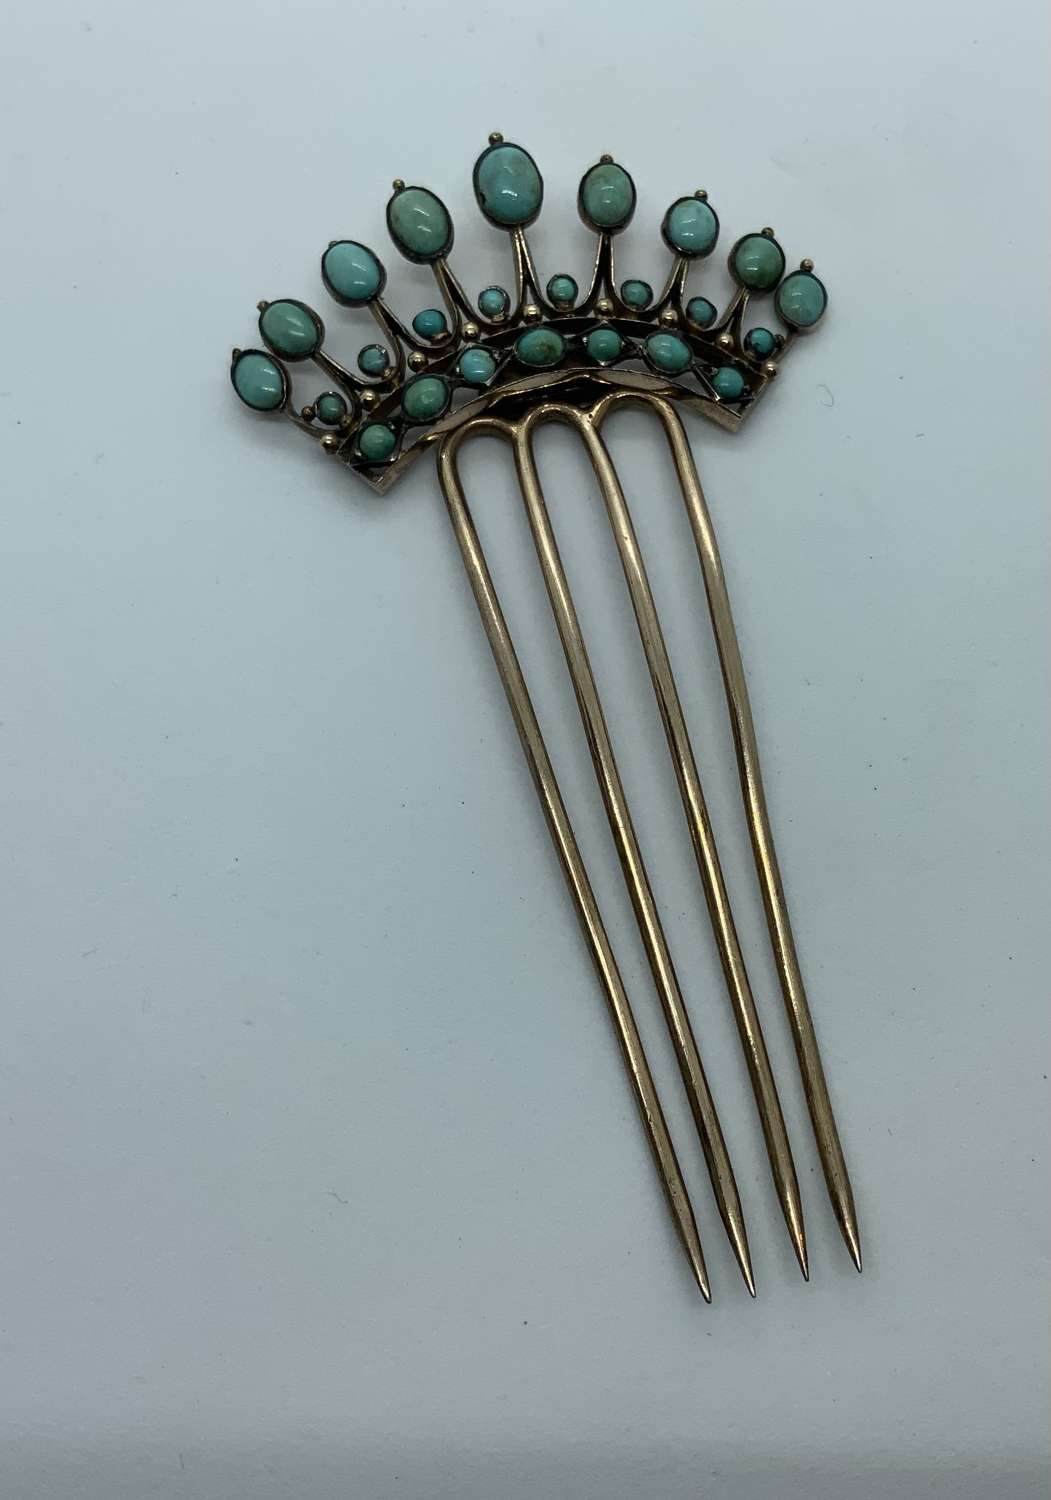 French 19th century hair comb